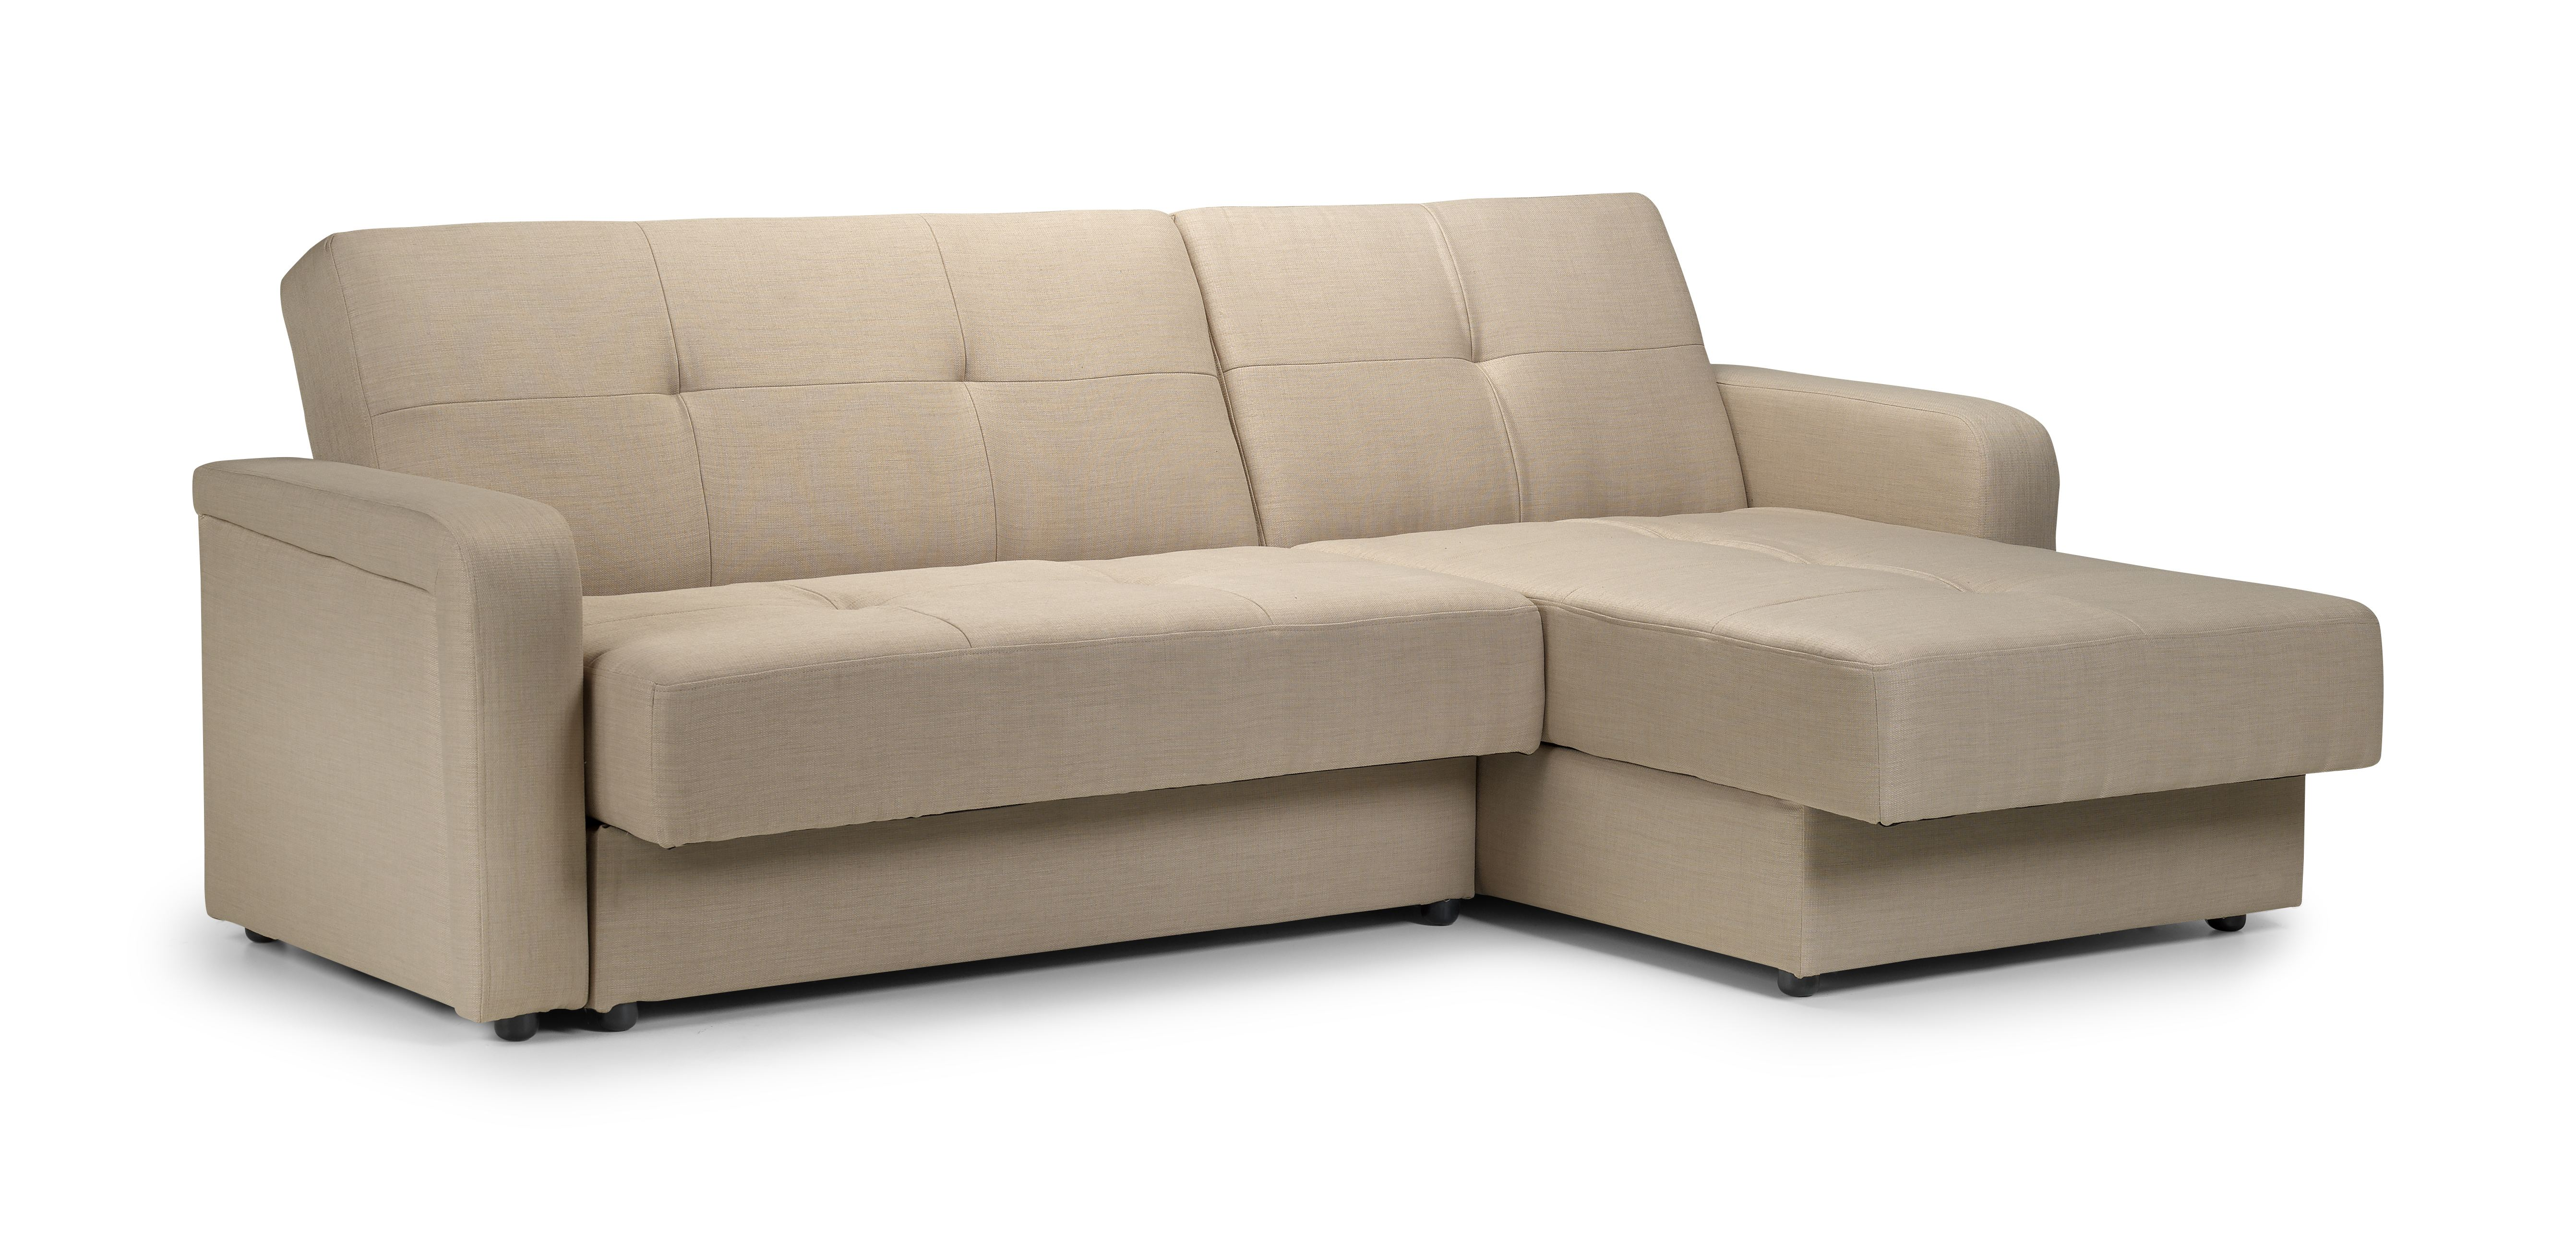 bed and sofa warehouse leeds motion set beds instore direct